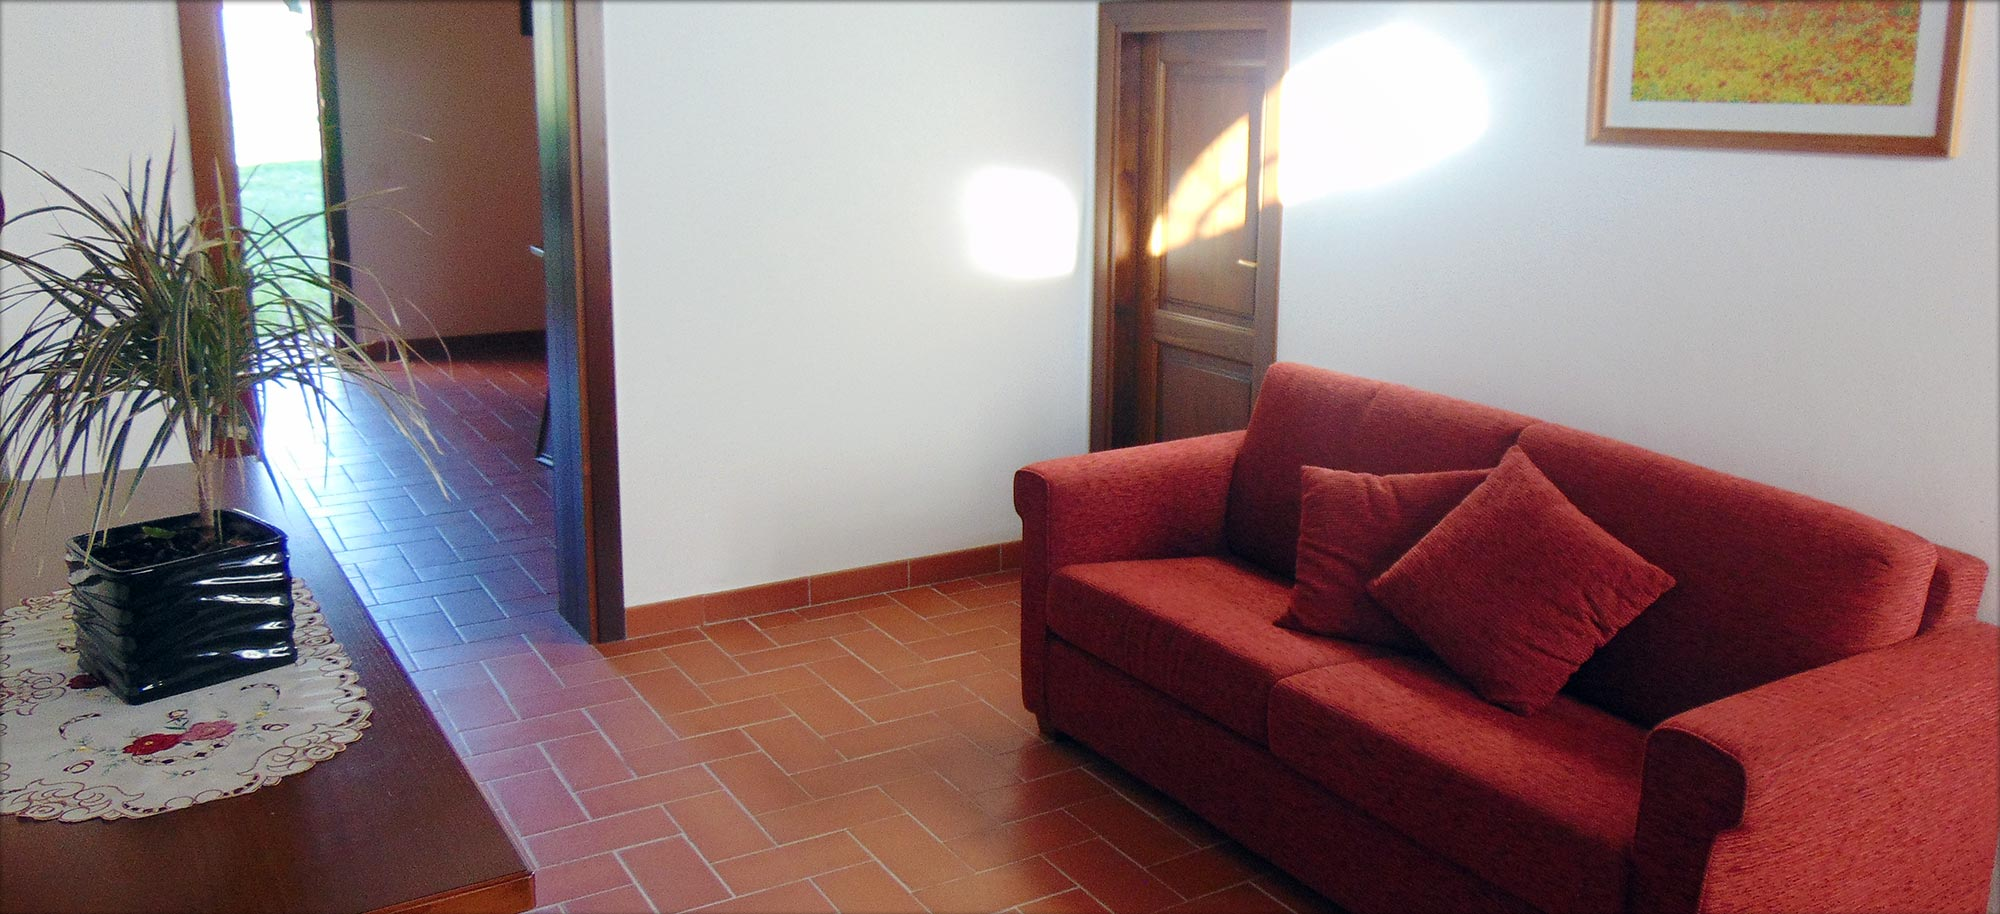 Corte Tommasi - Holiday apartments in Tuscany - 102 - Tuscany apartment with swimming pool